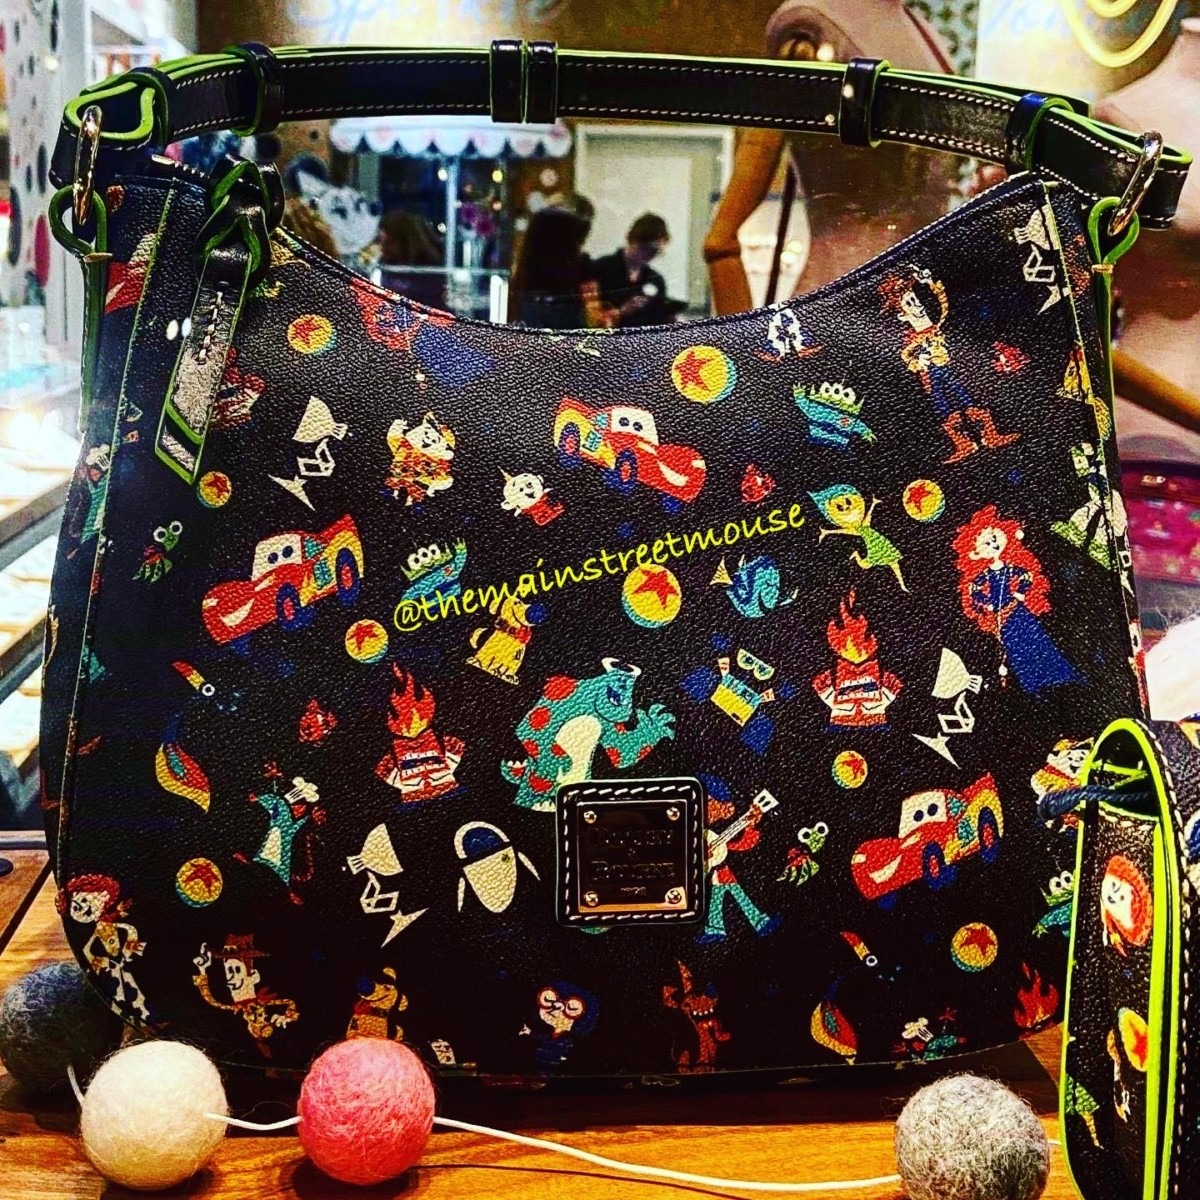 New Pixar Dooney & Bourke Bags Out Tomorrow! 3